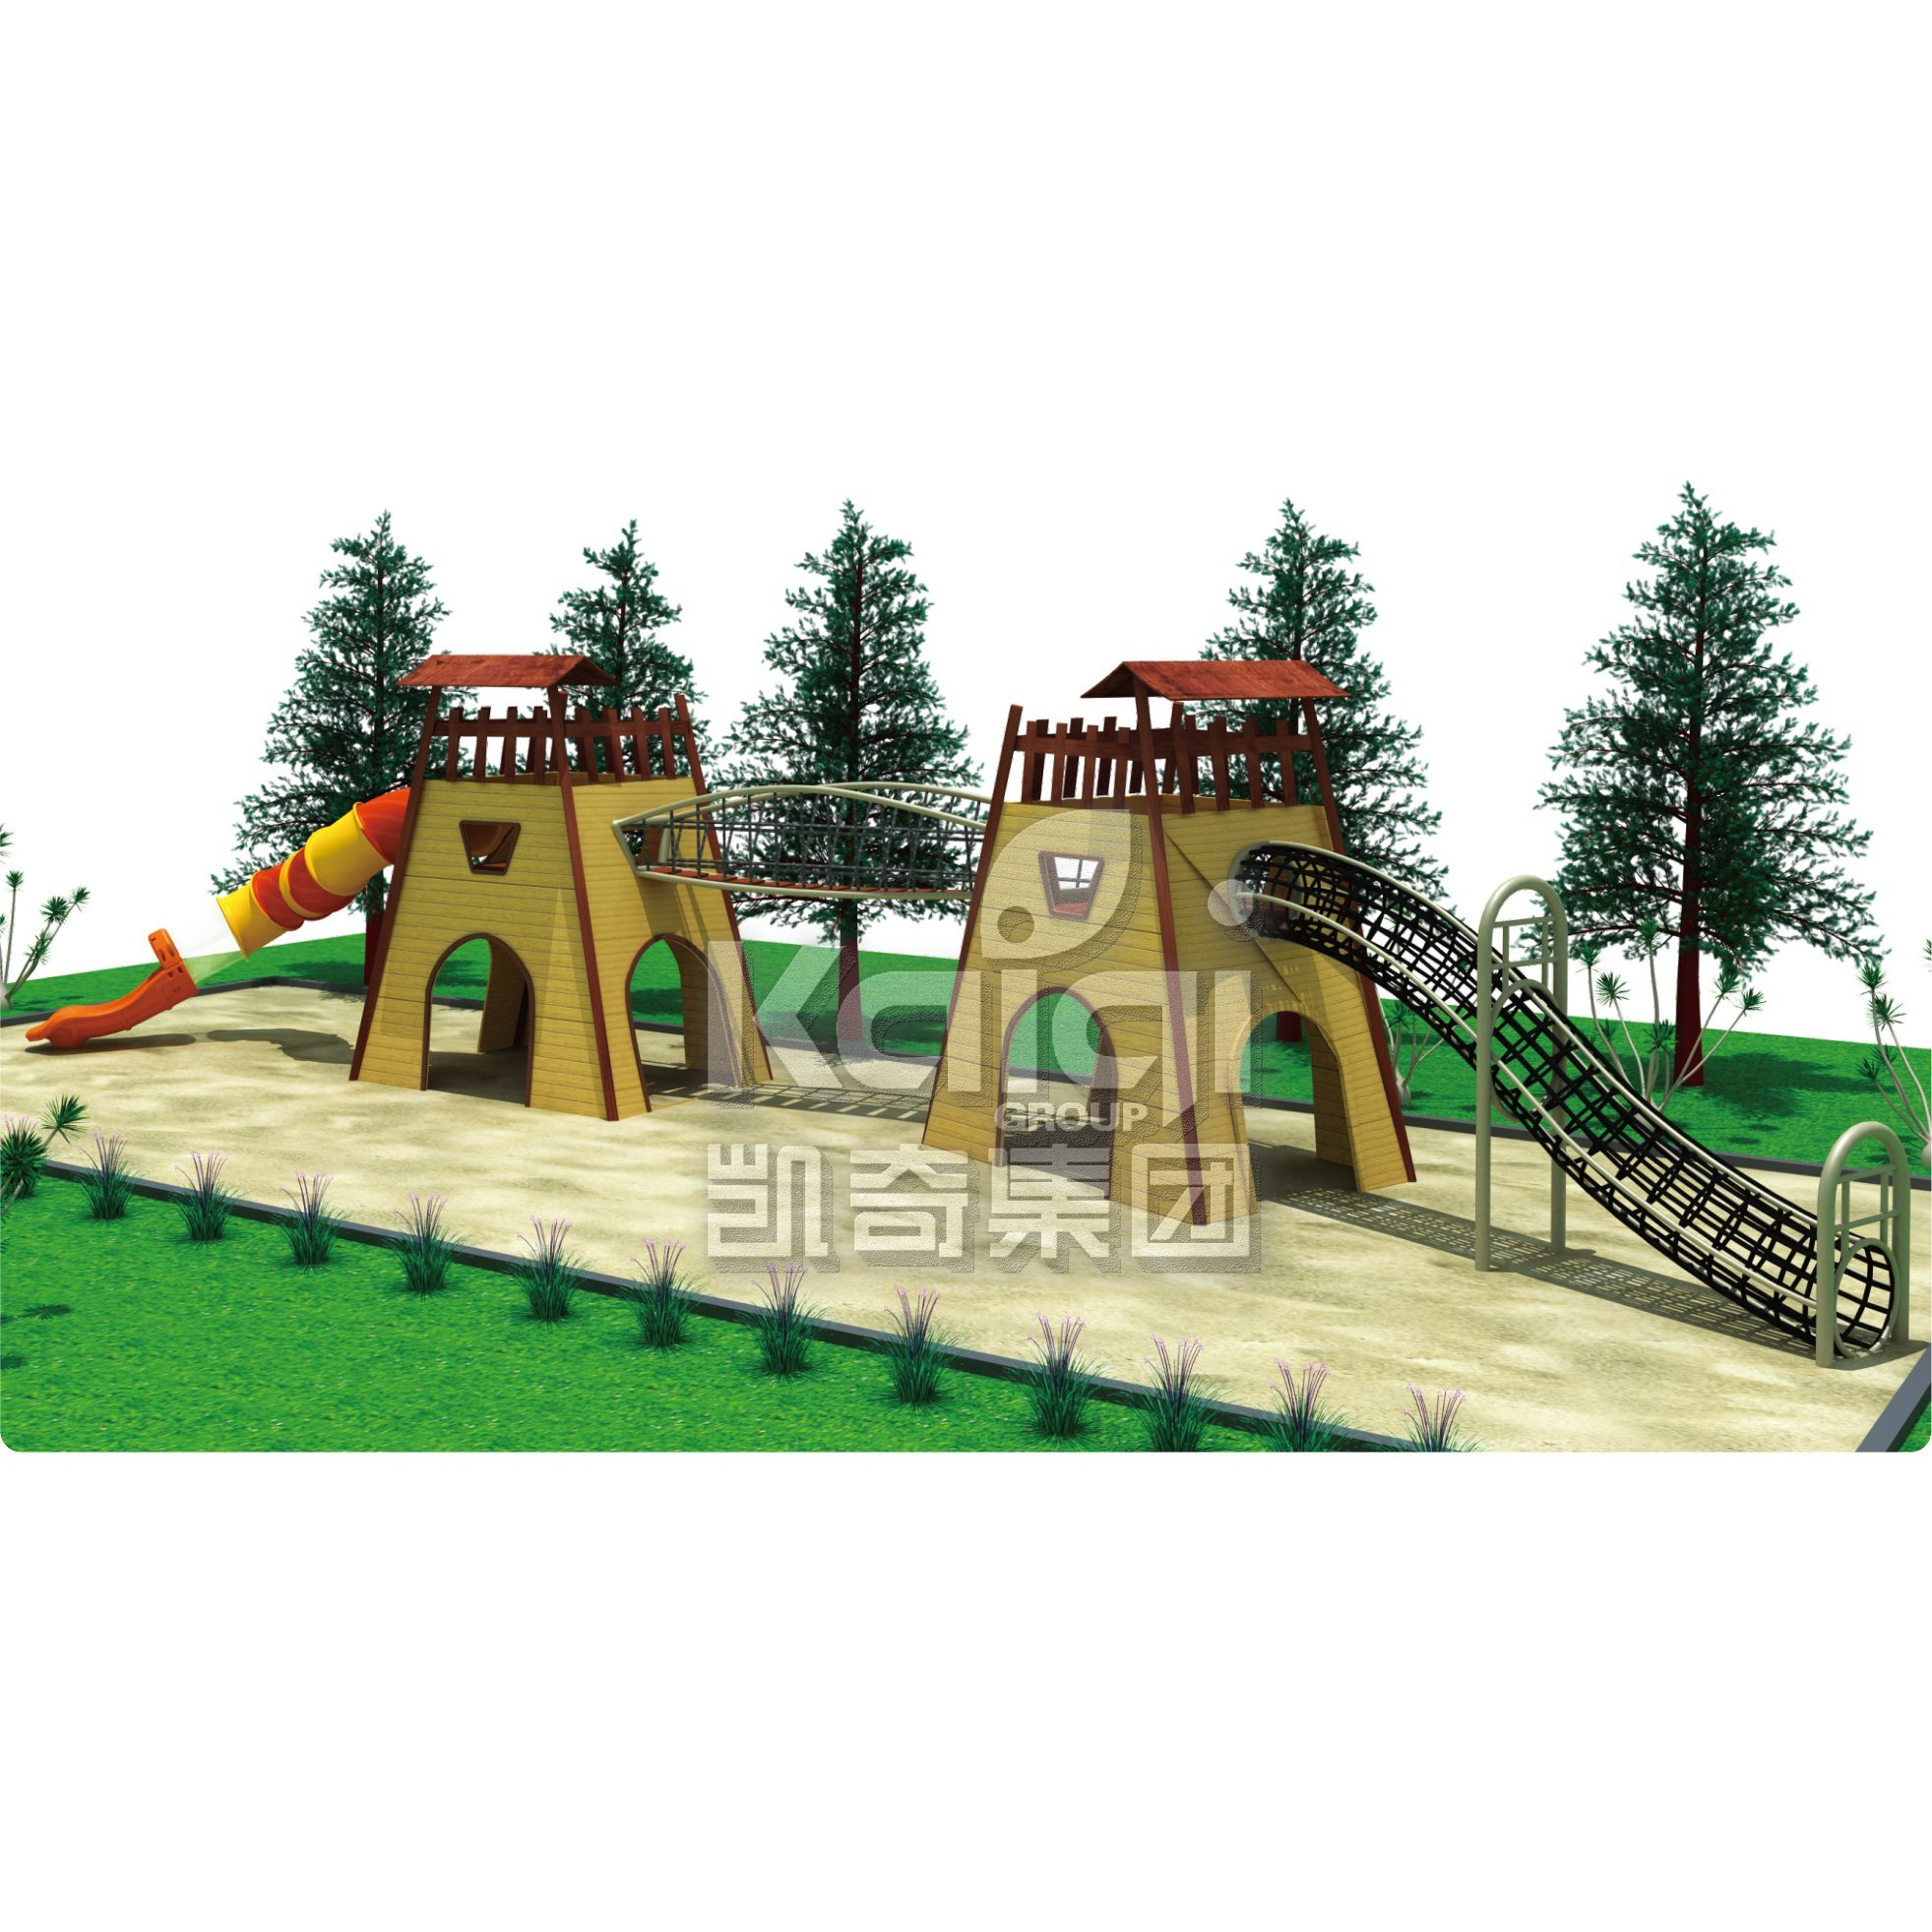 China Playground Outdoor Playground Indoor Playground supplier